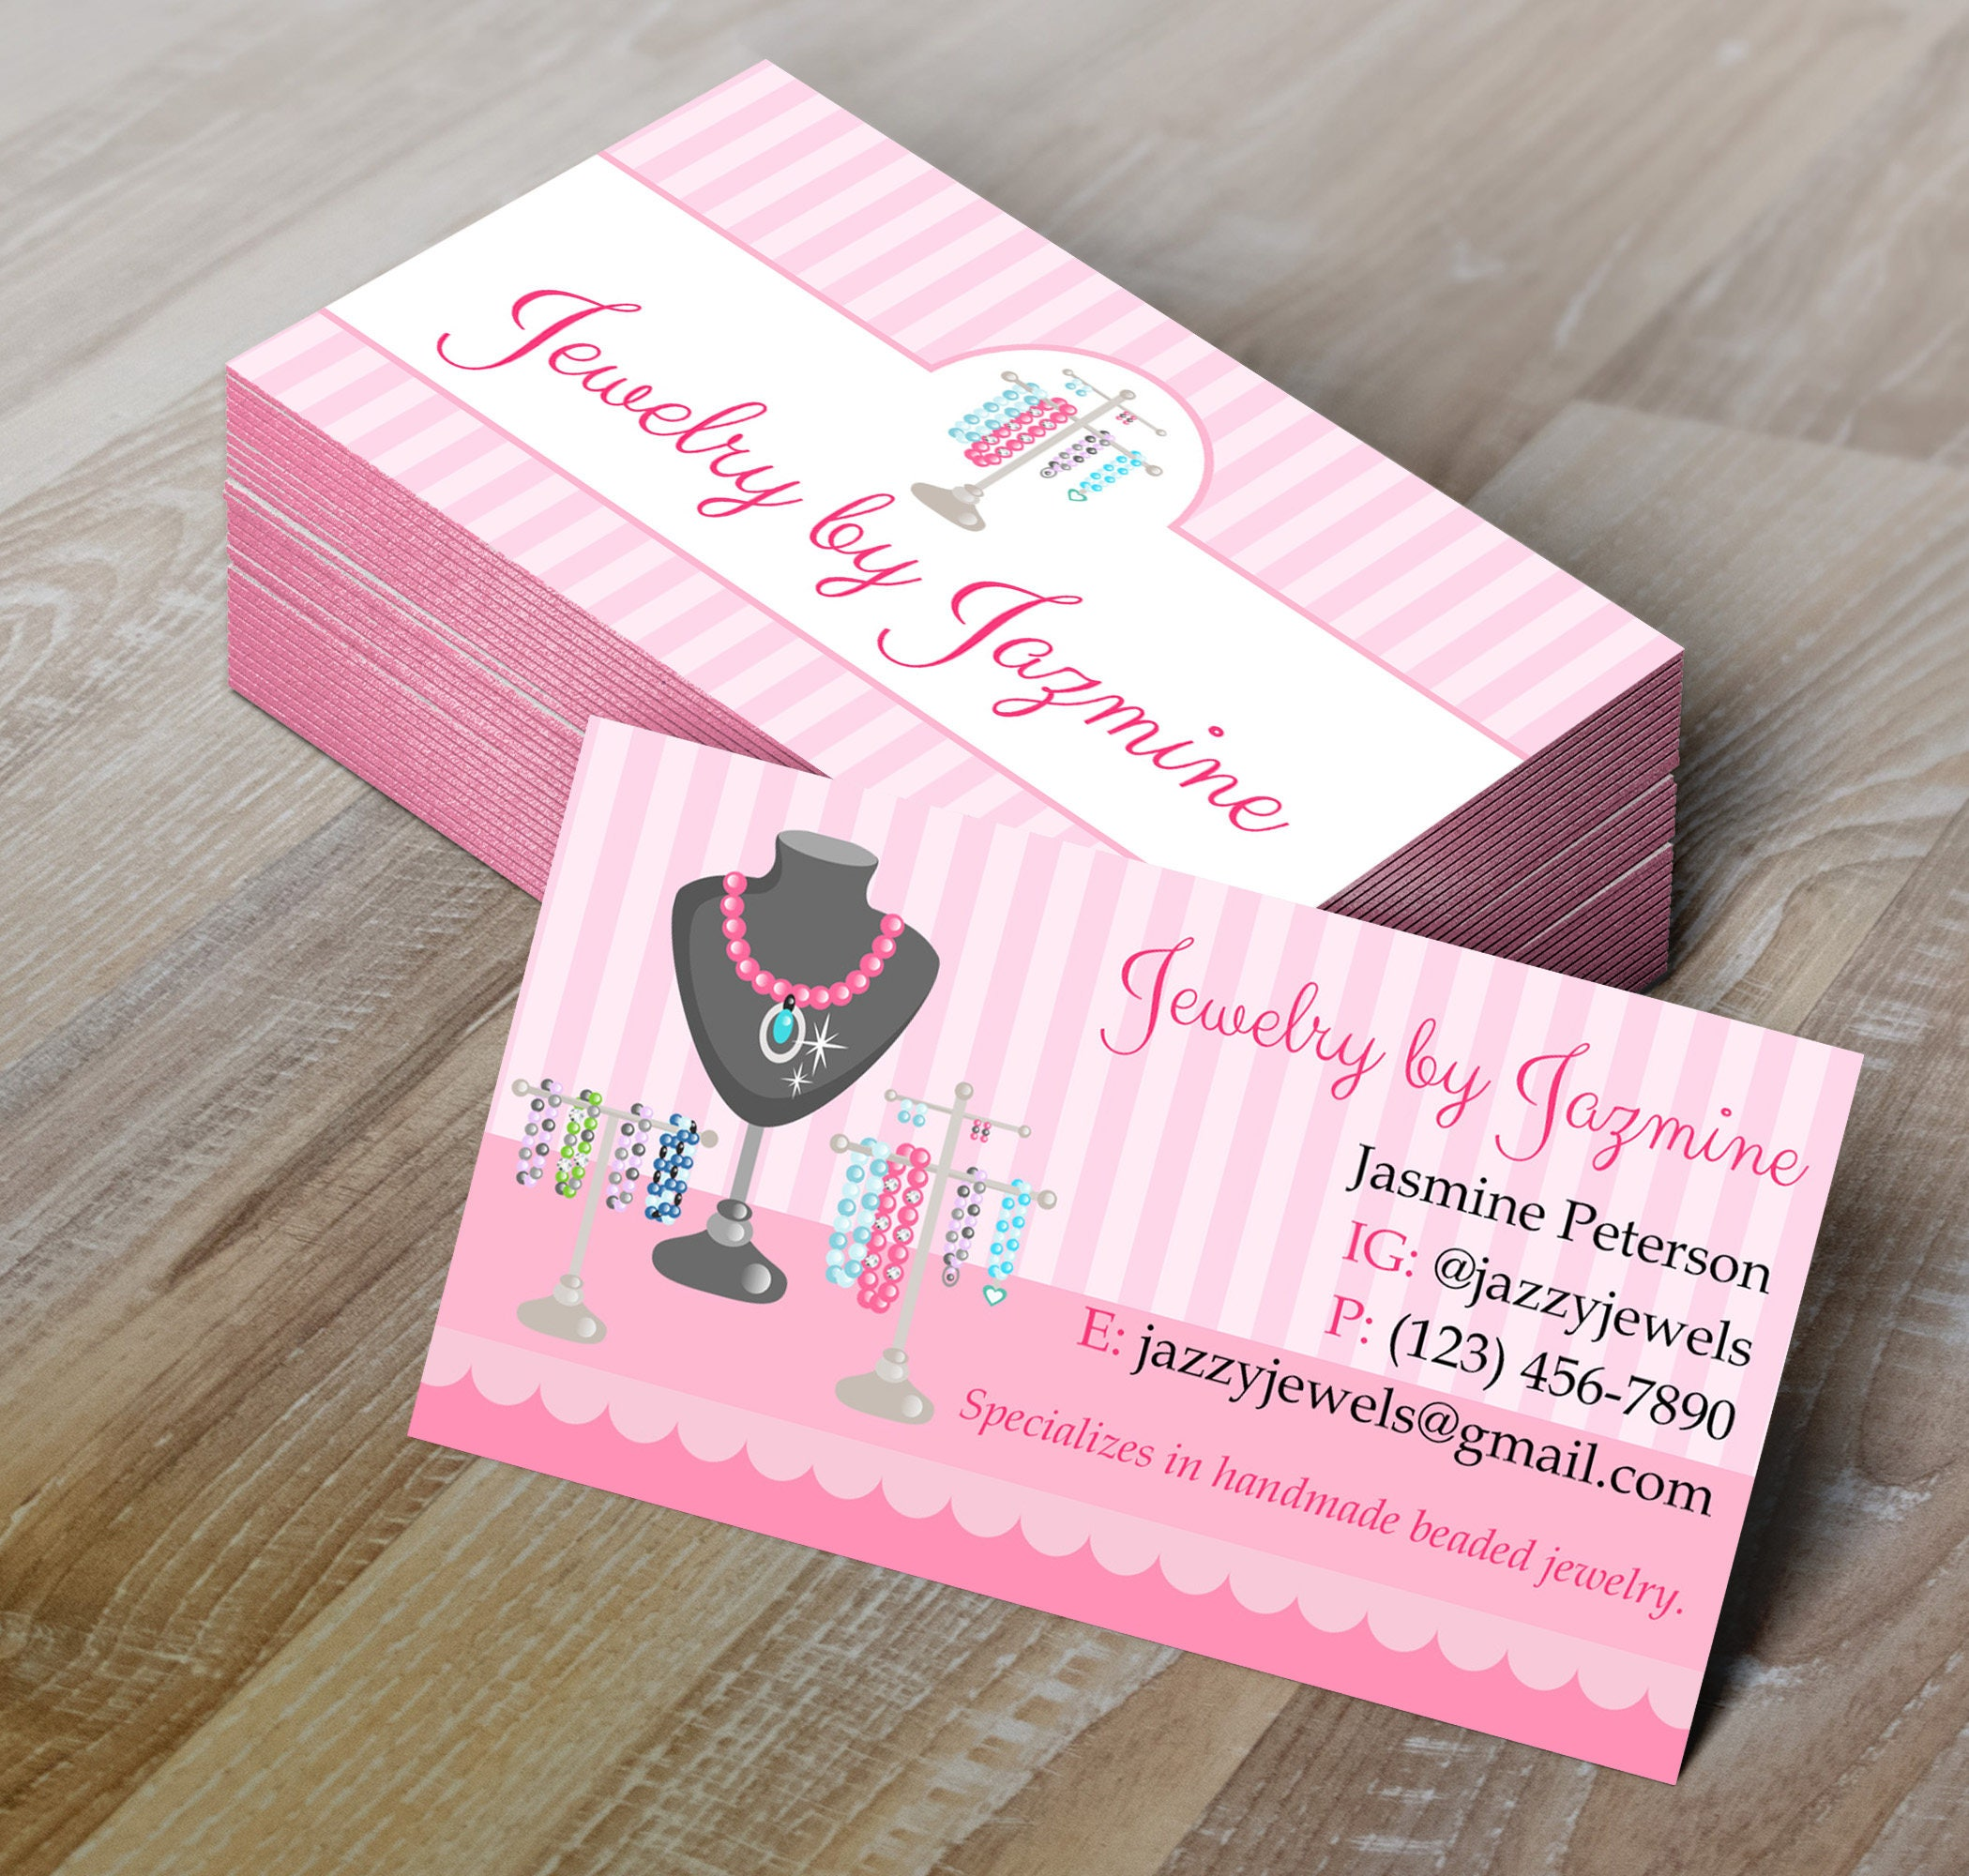 Do It Yourself Jewelry: DIY Do-It-Yourself Jewelry Making Business Card Editable